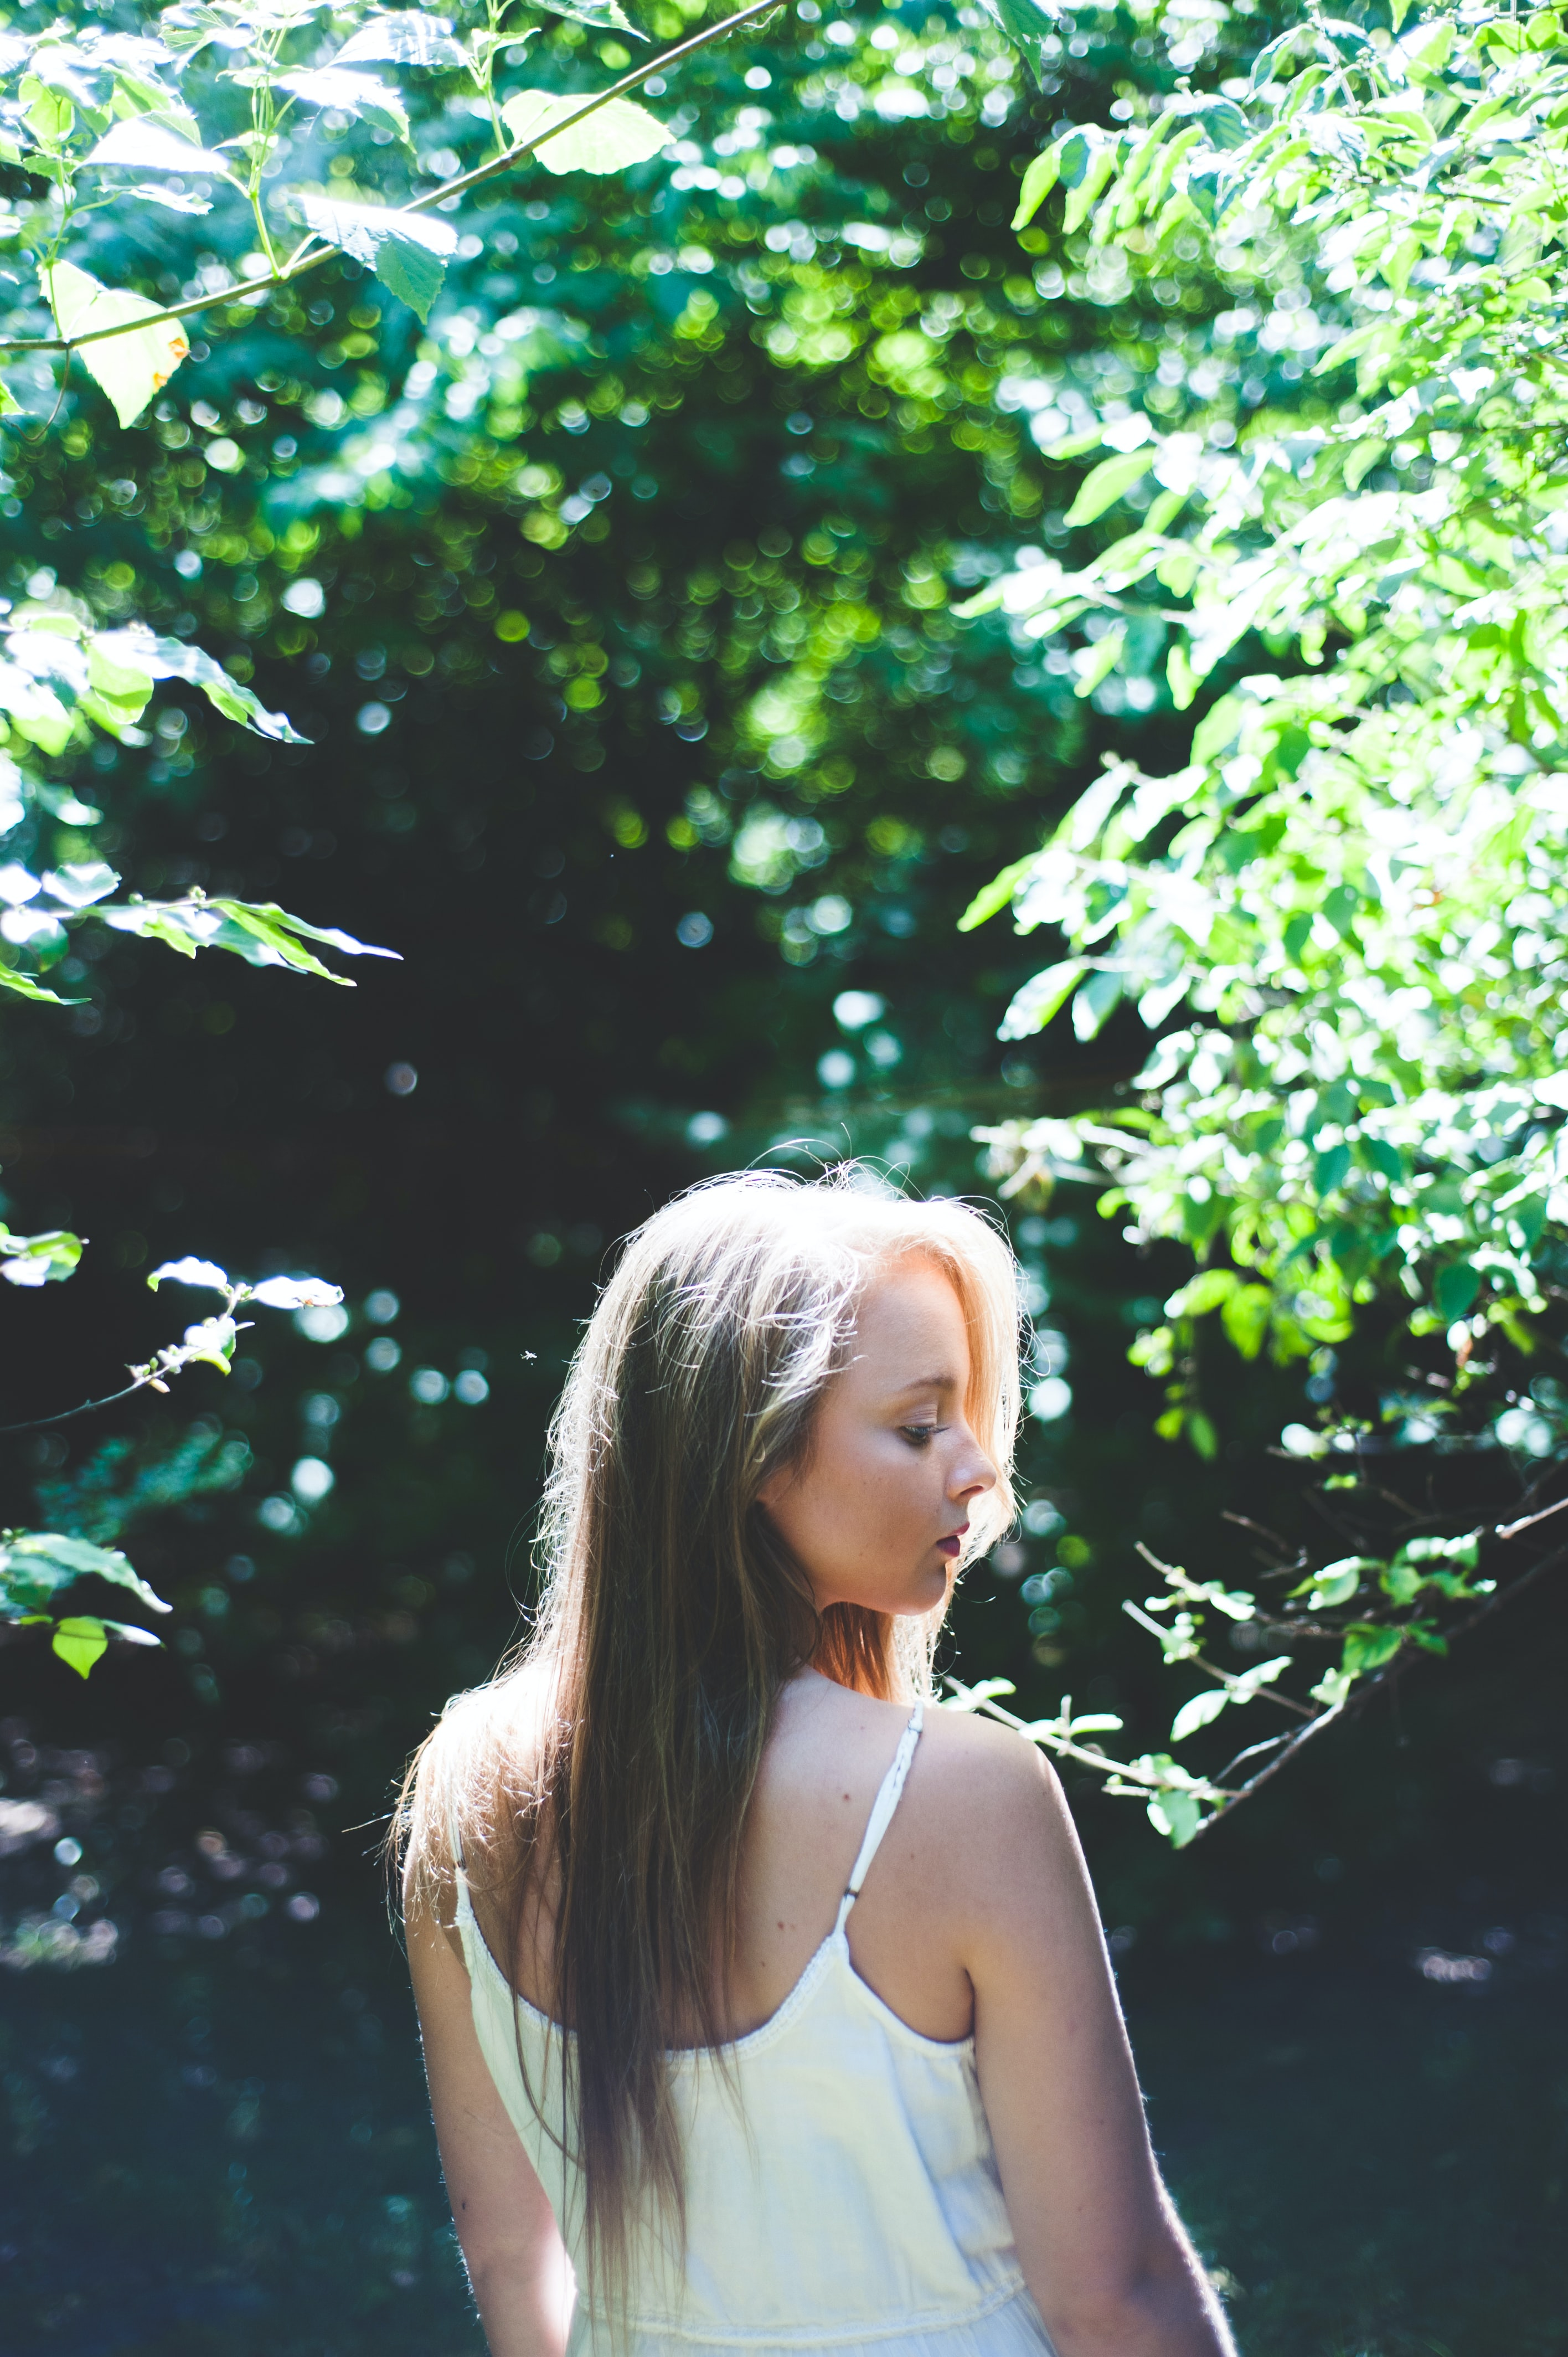 woman standing near tree during daytime